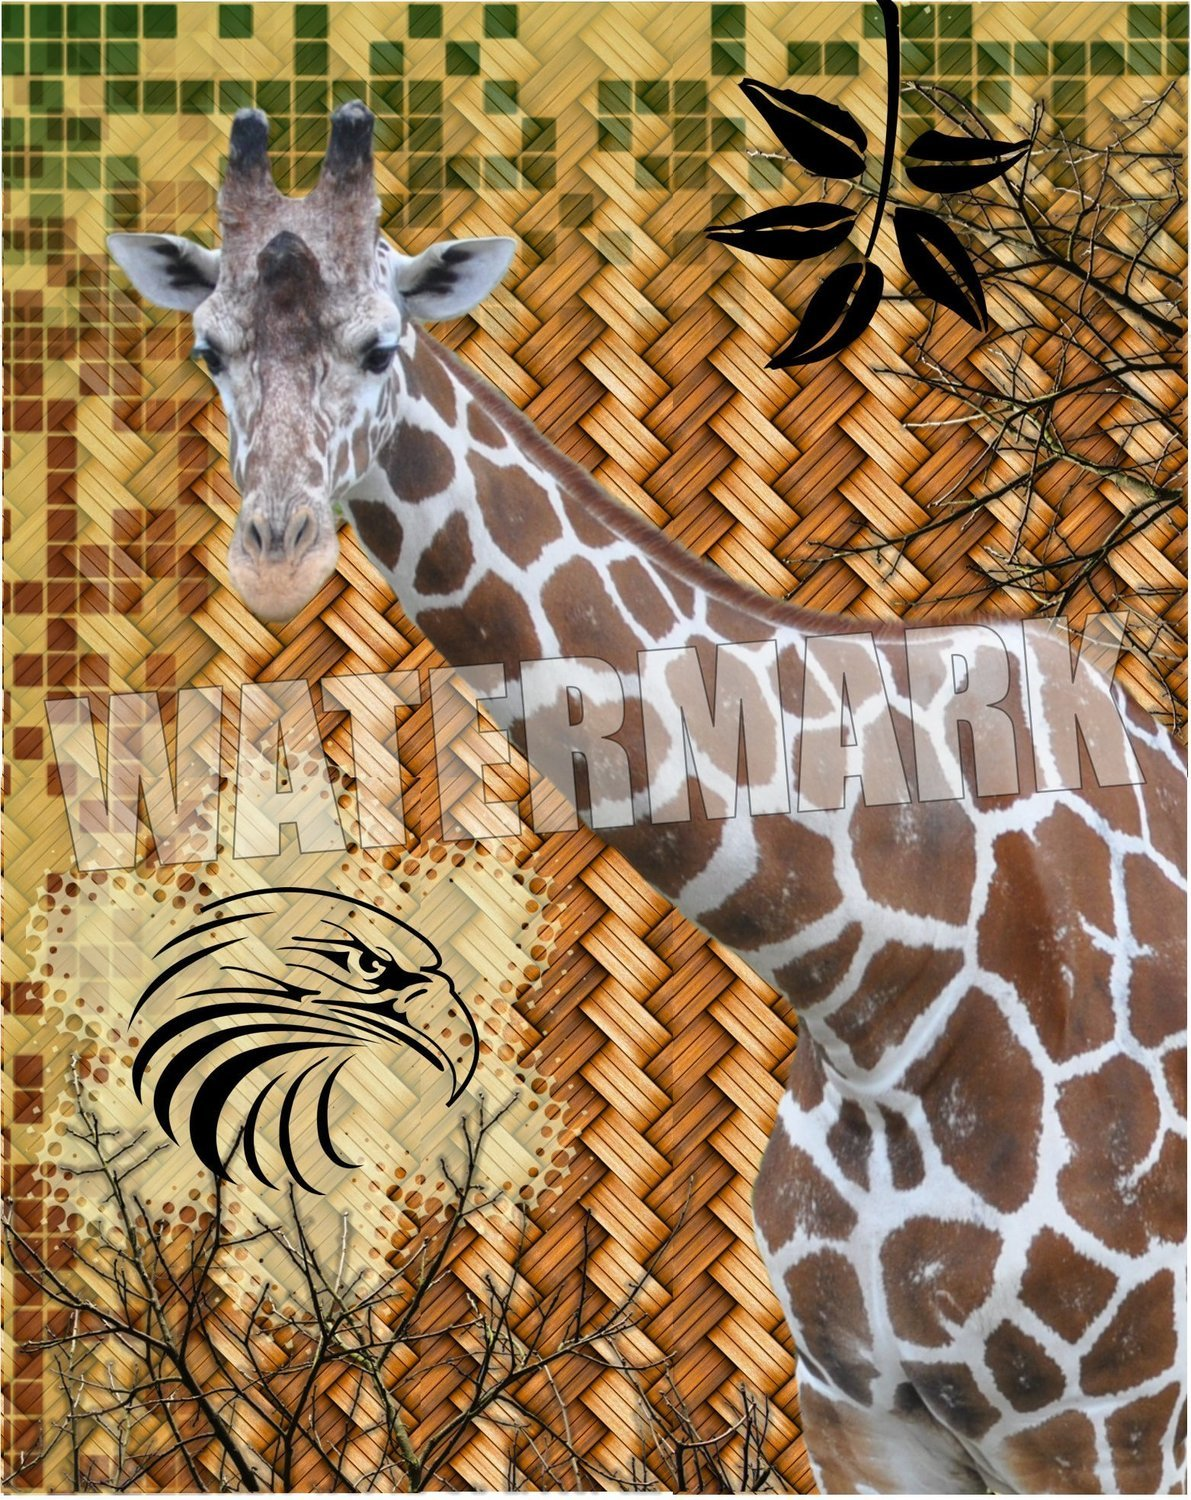 Jungle Giraffe/bird Instant Digital Download Print Wall Decor Graphic Art Printable Home Office (Download)